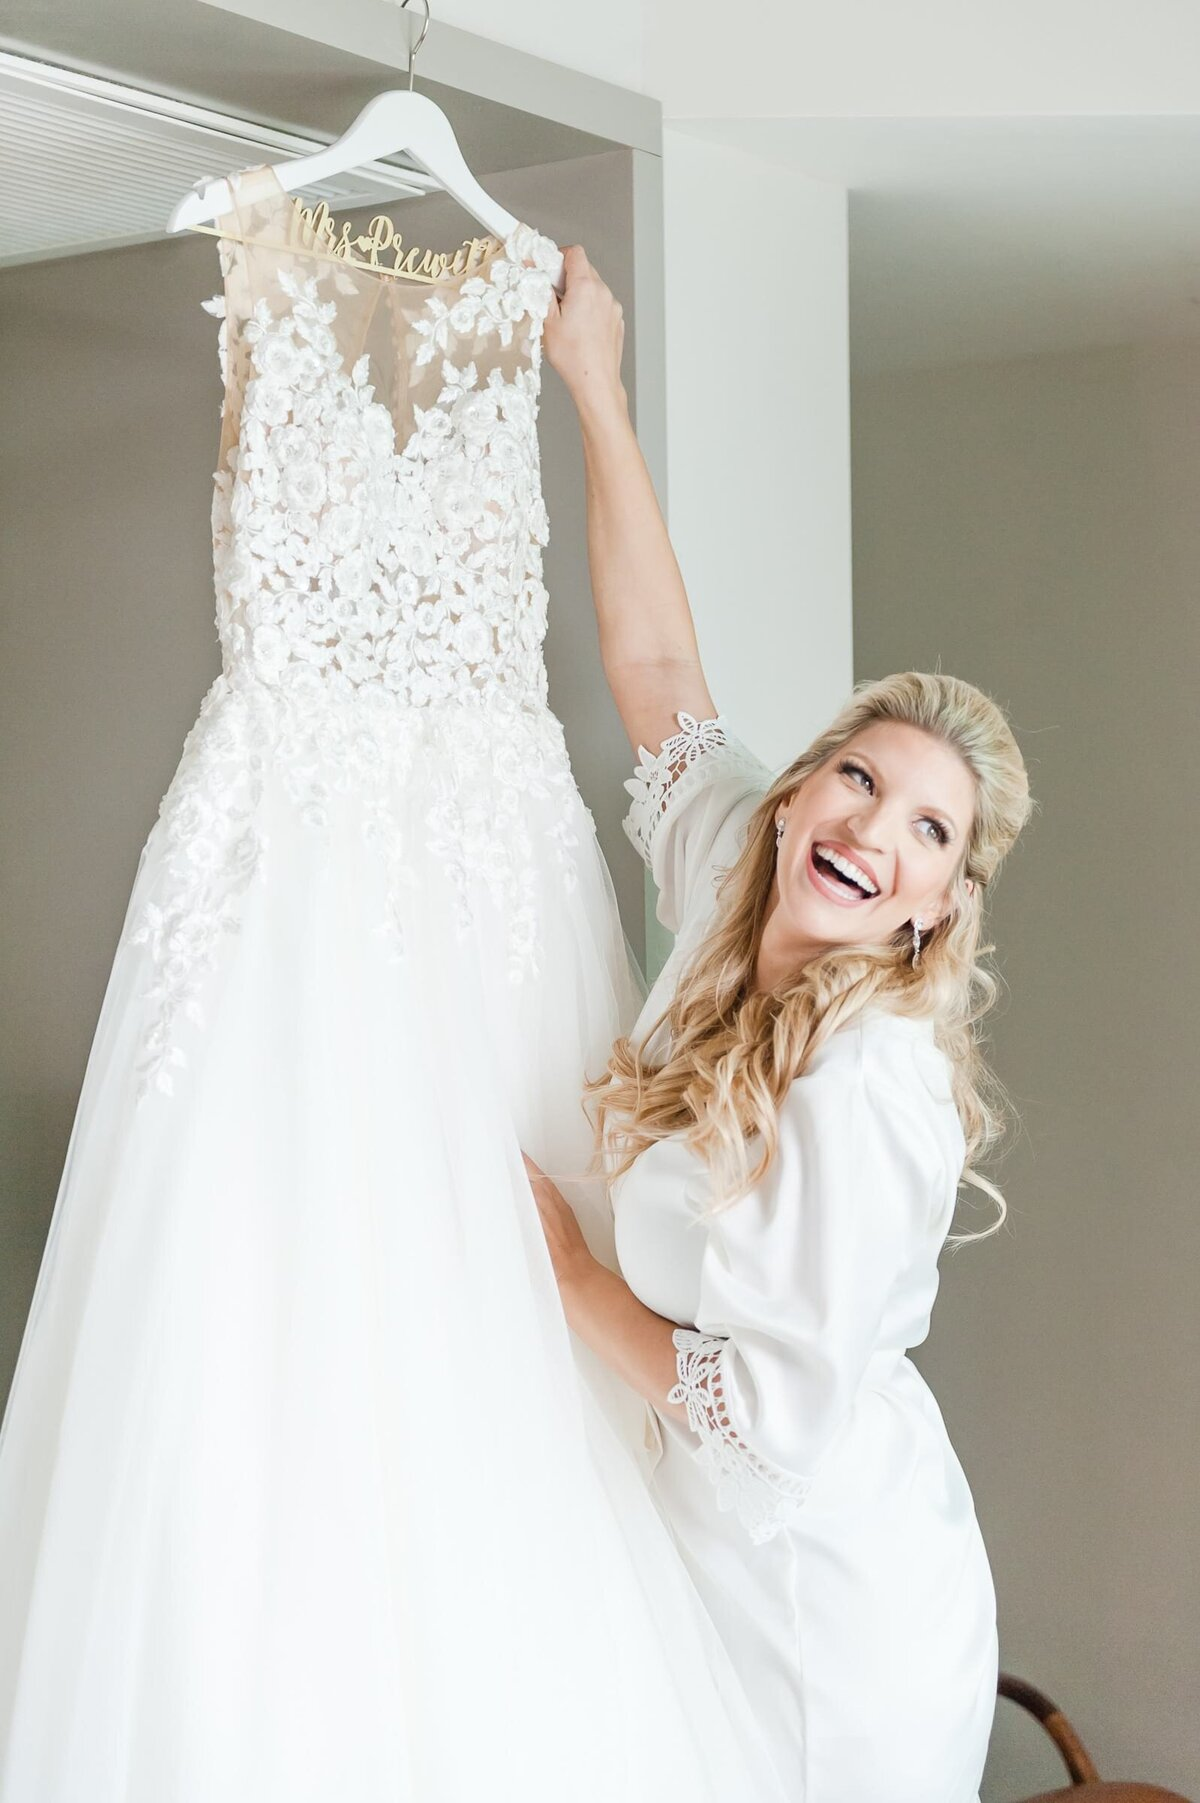 bride-laughing-with-bridal-gown